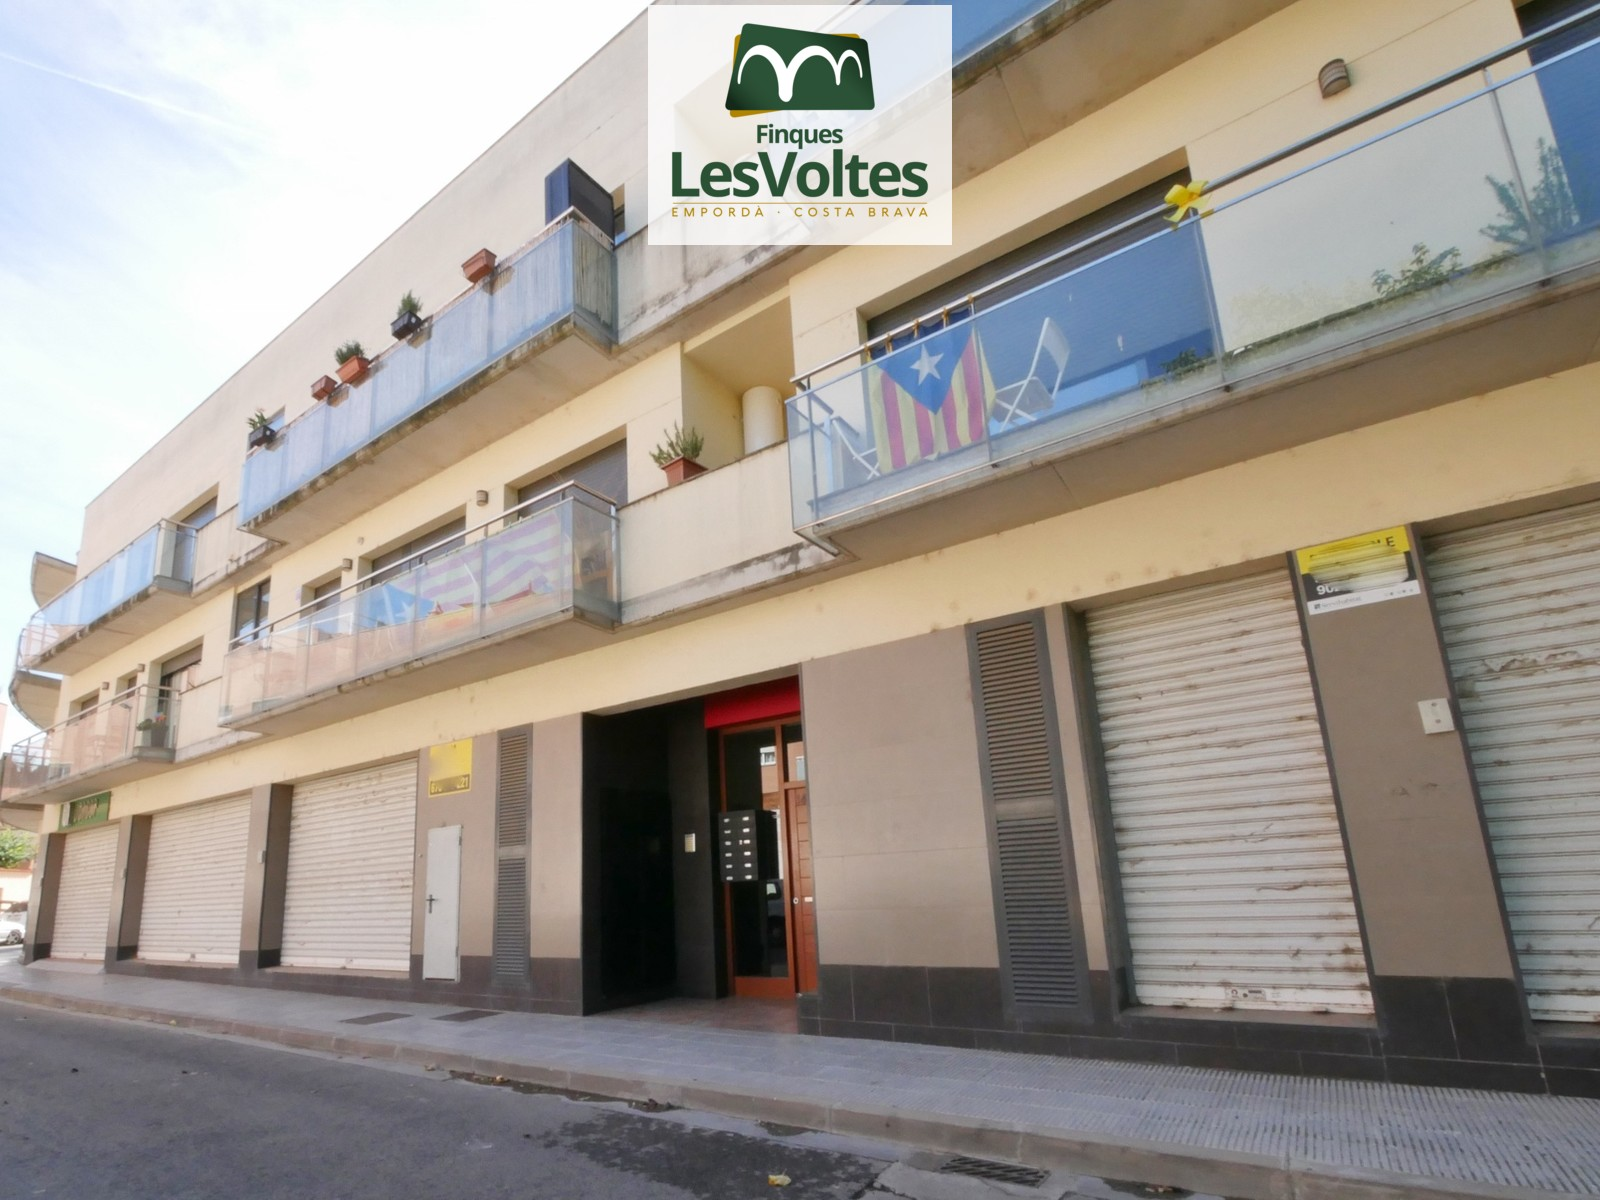 FLAT OF 70 M2 IN FIRST FLOOR WITH 3 ROOMS AND PARKING PLACE FOR SALE IN THE CENTER OF LA BISBAL D'EMPORDÀ.